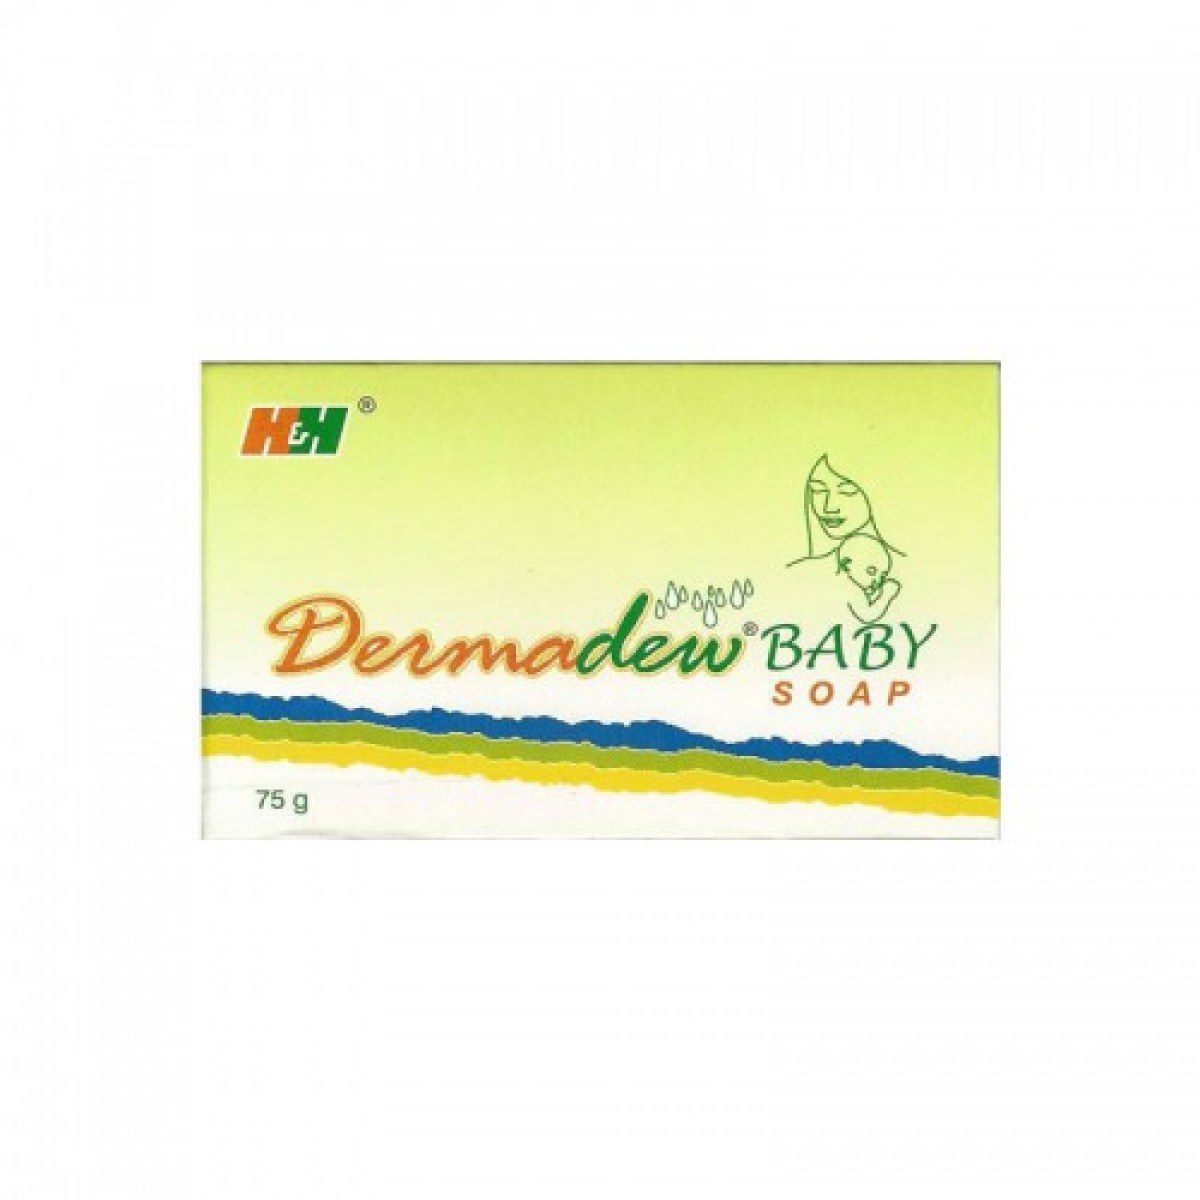 Dermadew Baby Soap Reviews Dermadew Baby Soap Prices